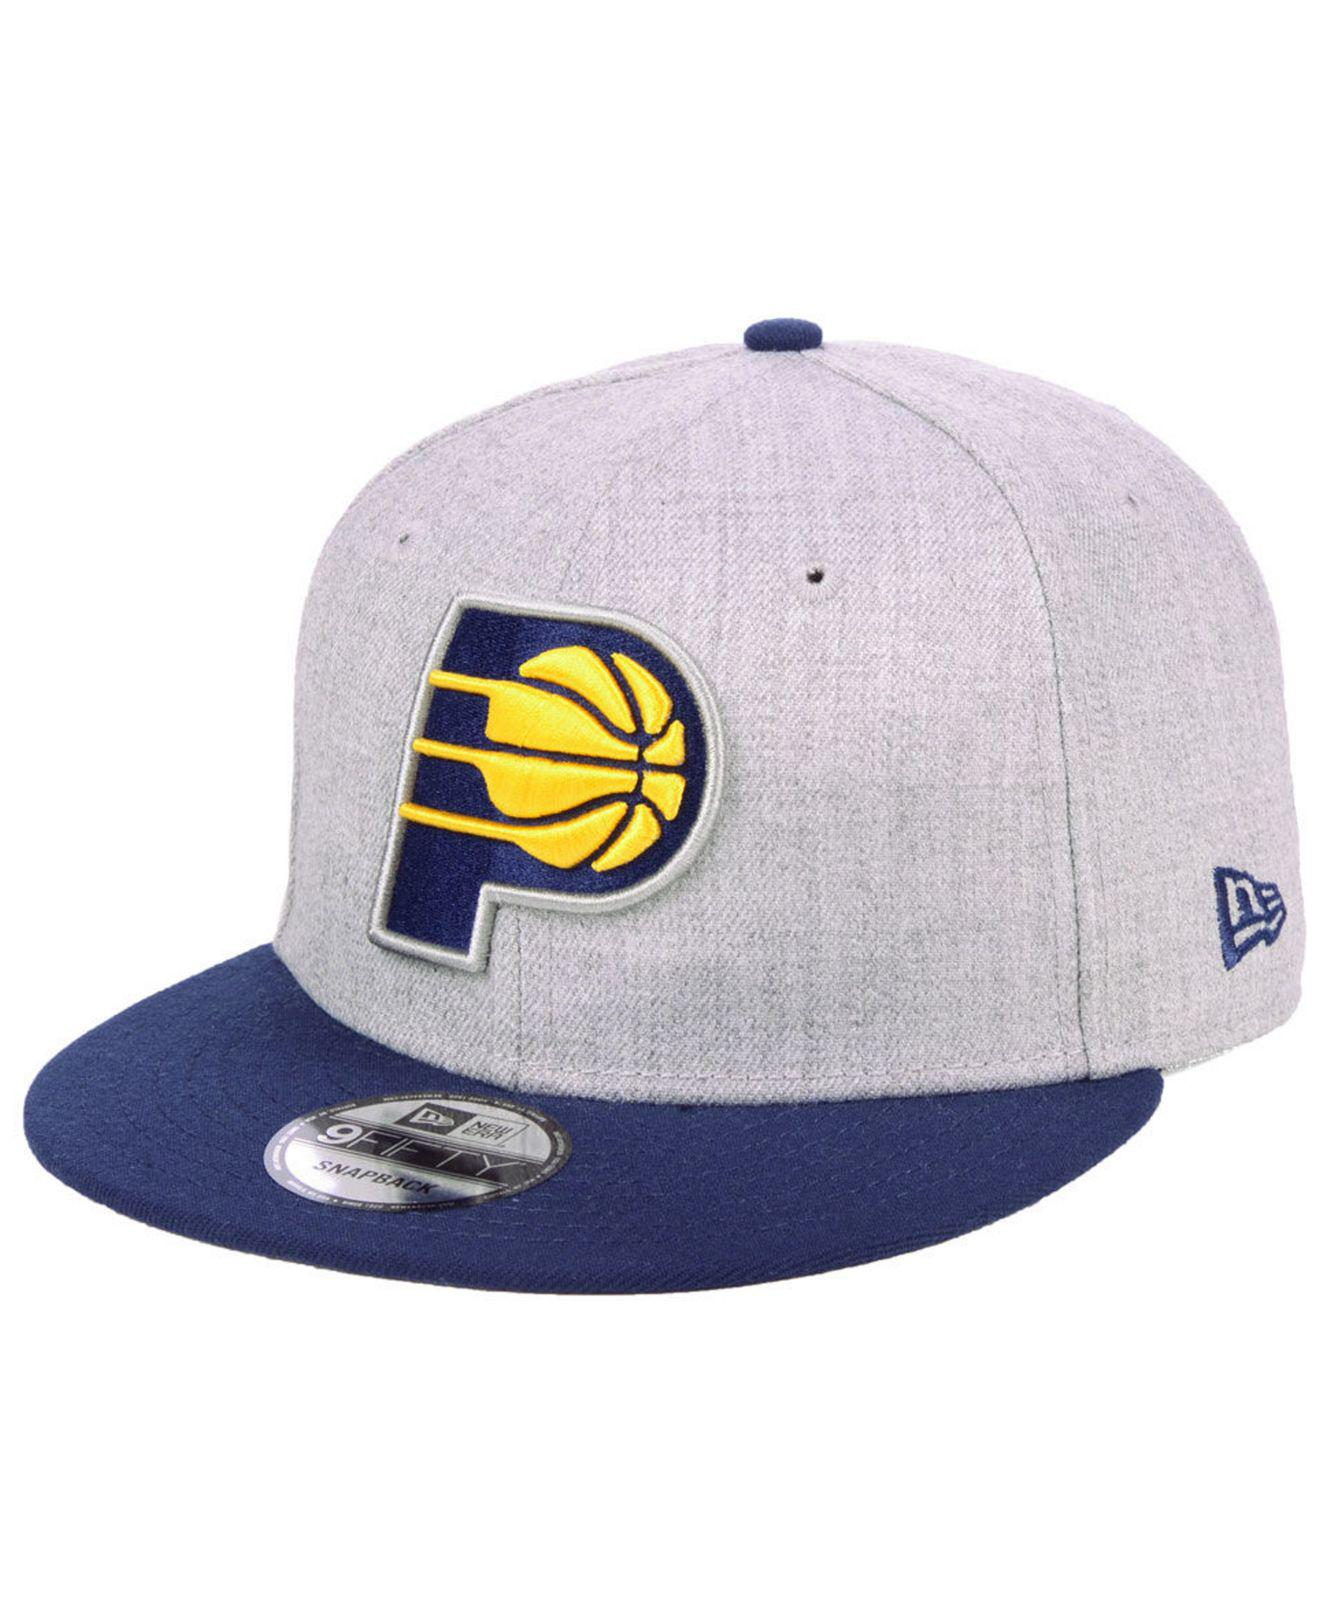 size 40 78905 f5b39 ... coupon code for ktz. mens indiana pacers heather gray 9fifty snapback  cap aedef 5144a